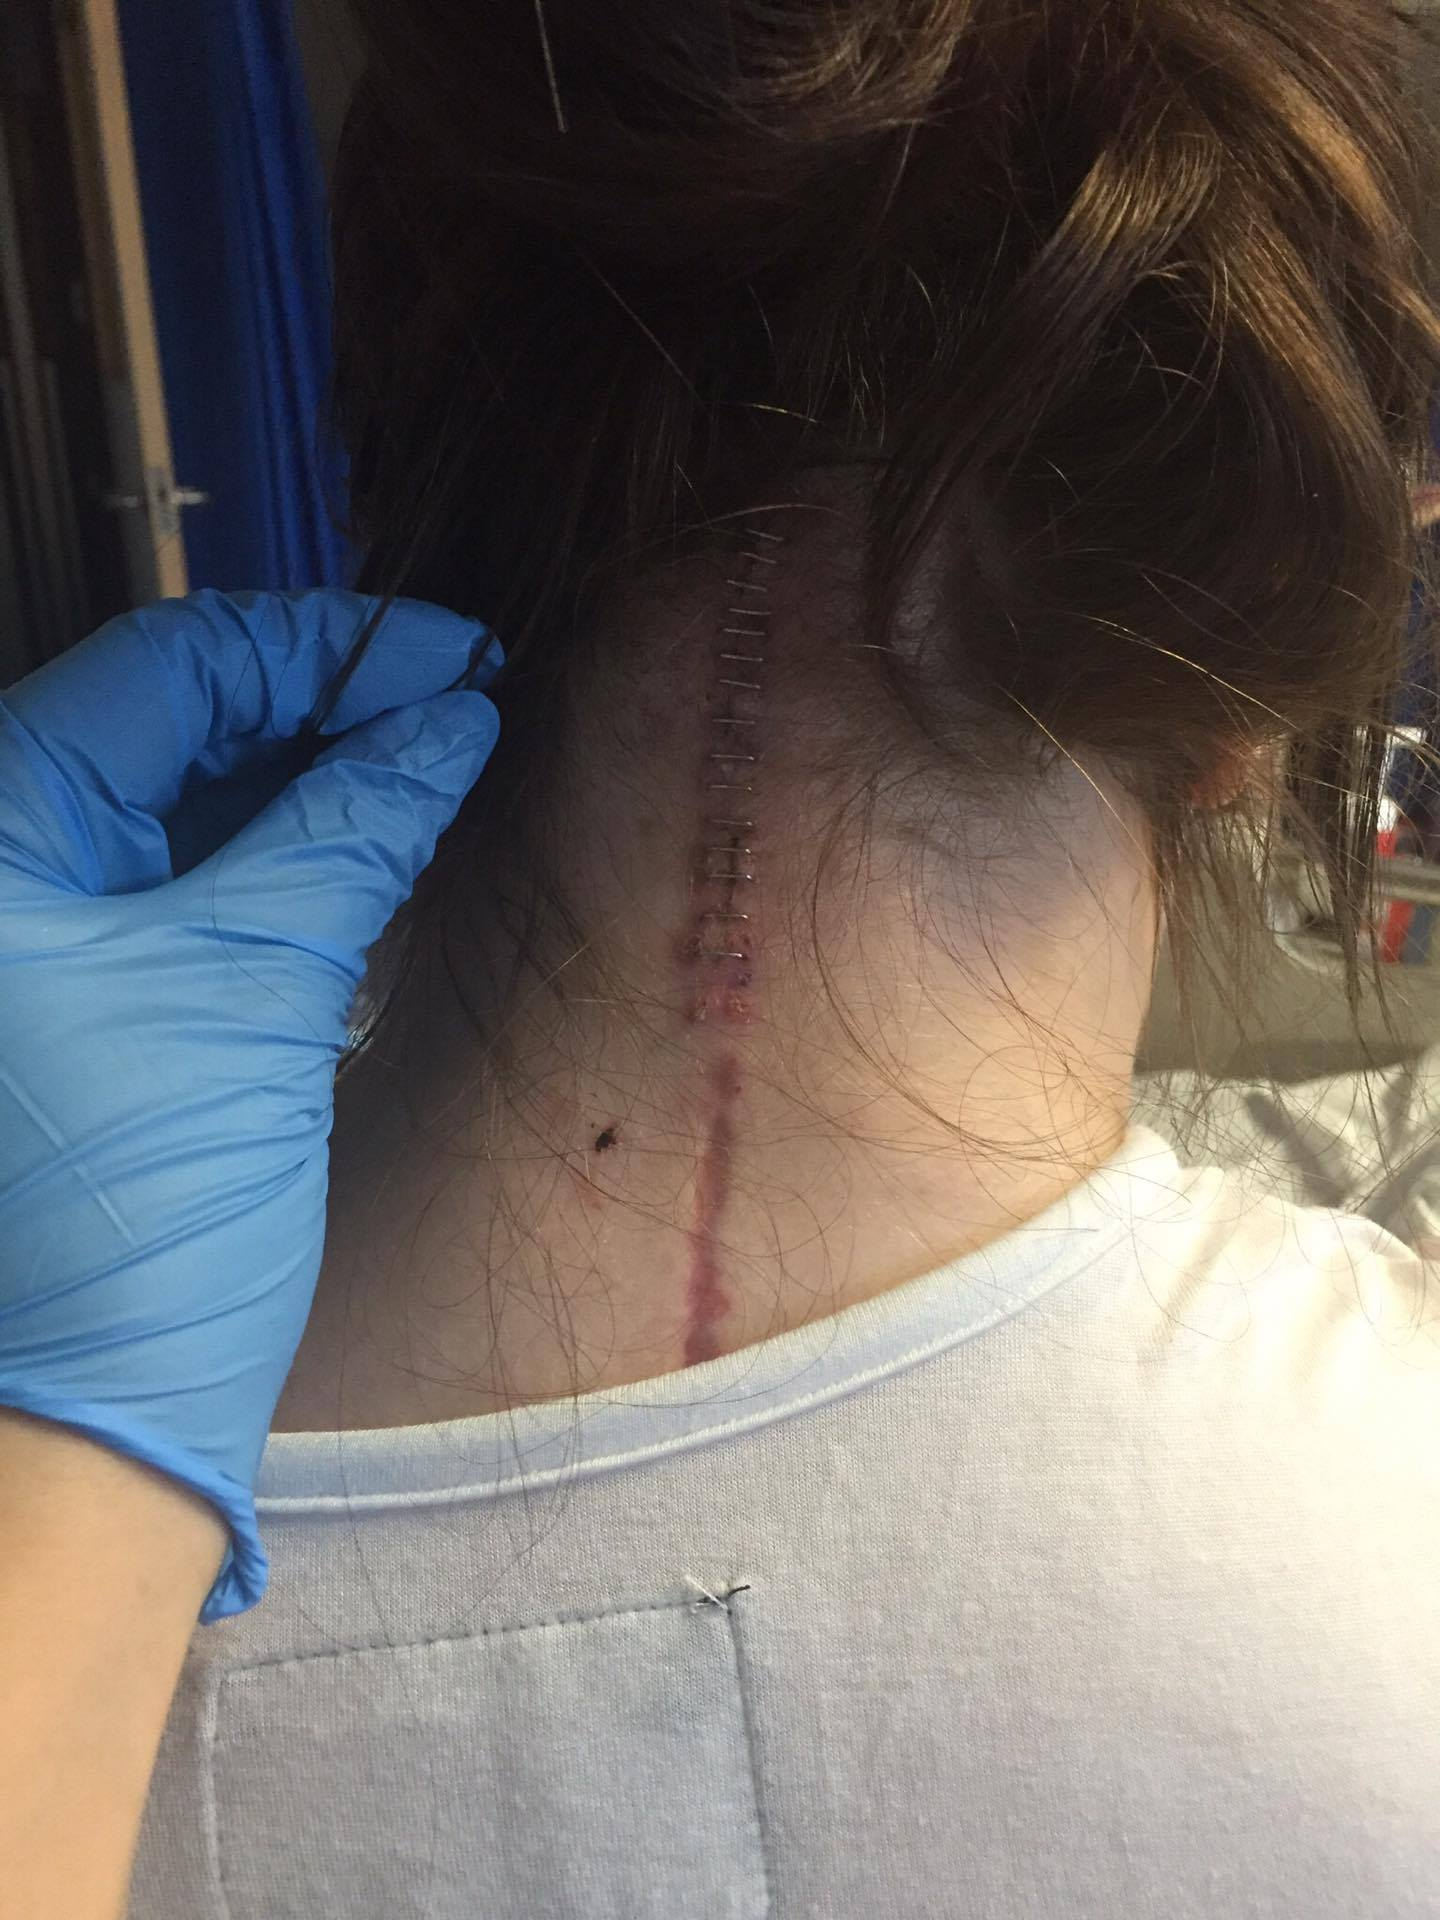 A picture of the back of the writer's neck with a surgical scar.